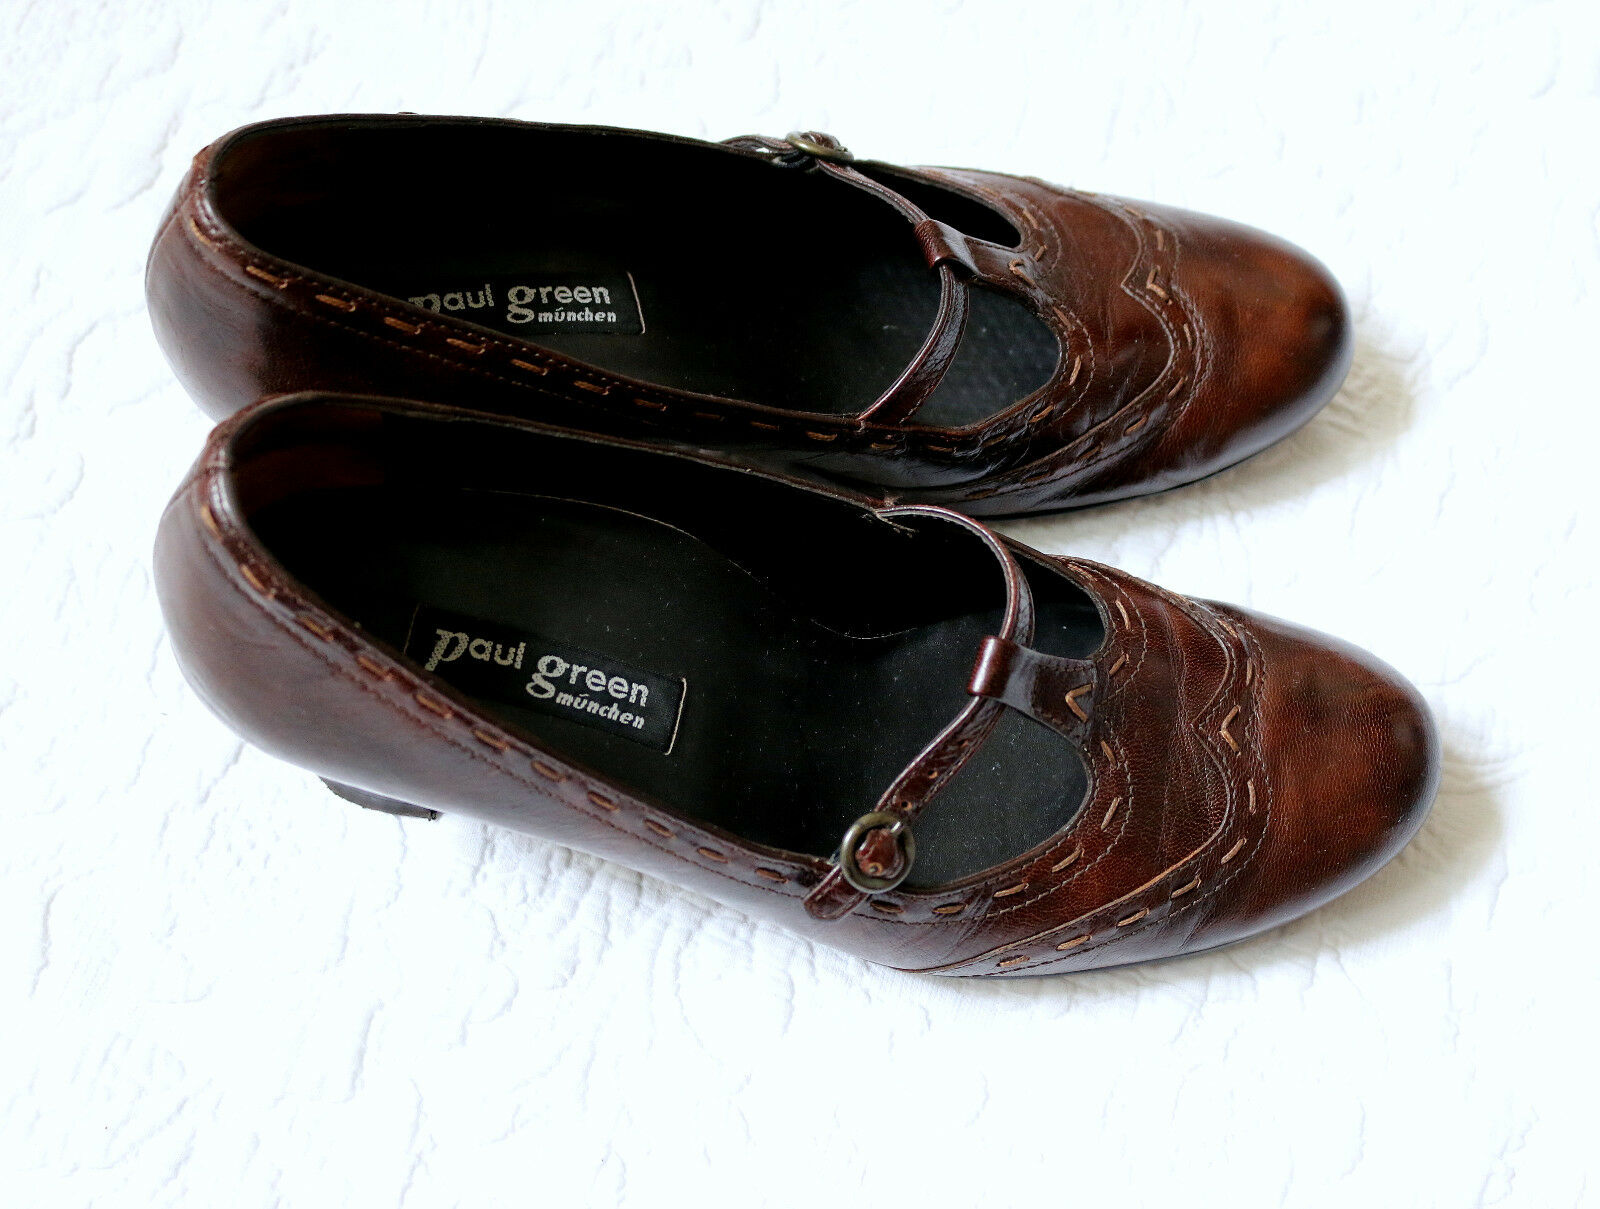 Paul verde comodi PUMPS PELLE MIS. 4 - 37 LEATHER np.99, -  SHABBY